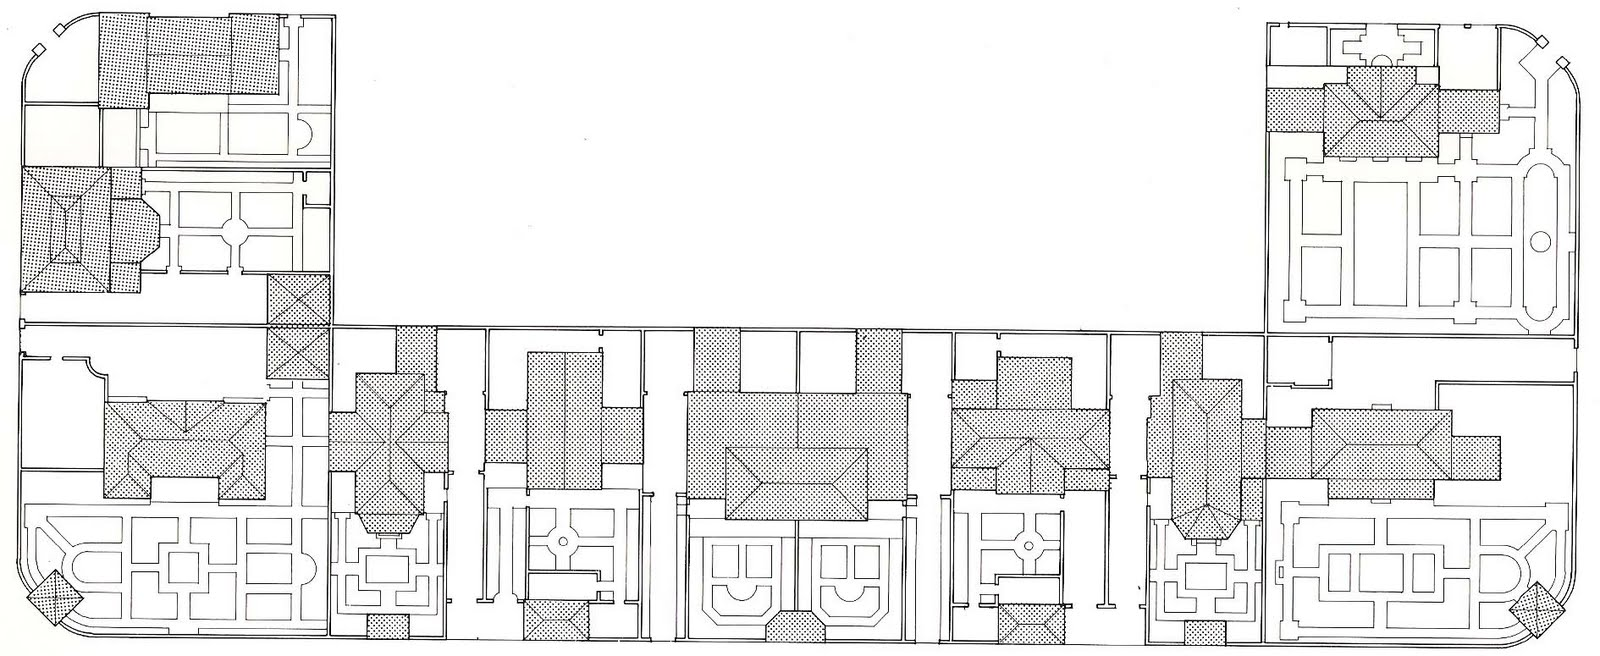 the devoted classicist july 2011 block plan of french city village coral gables florida from the original working drawings drawing mark alan hewitt from the architecture of mott b